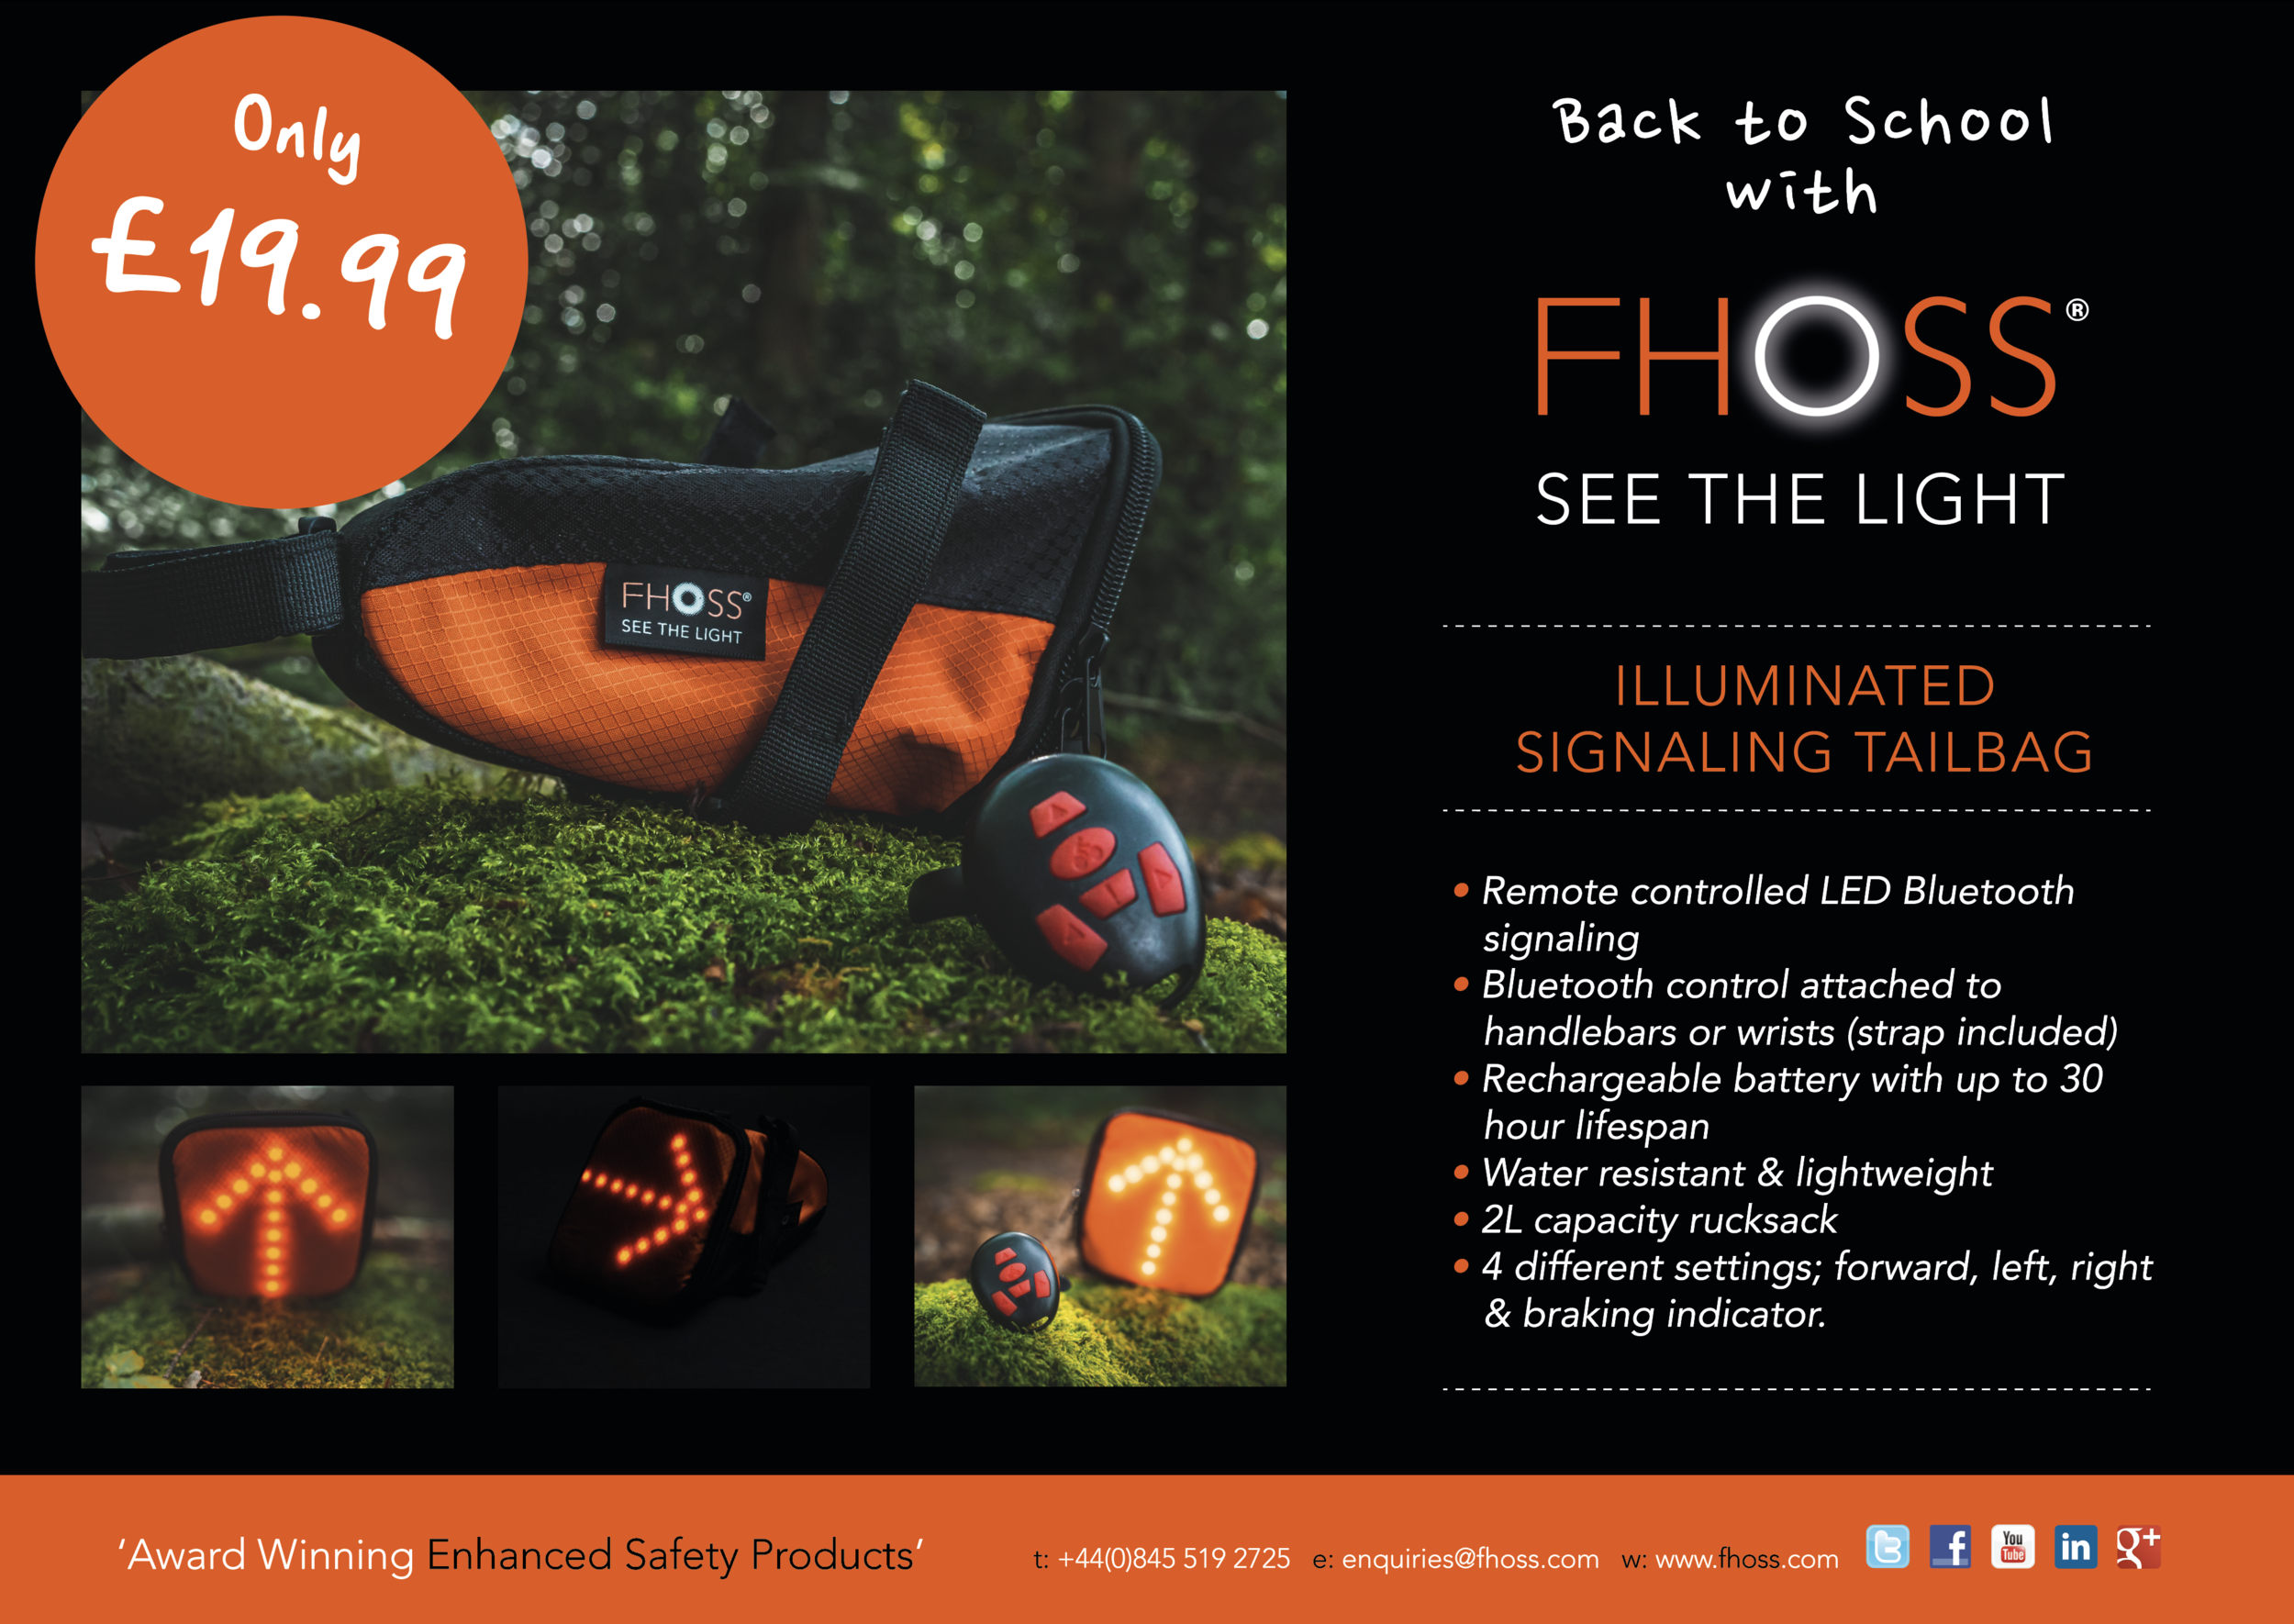 FHOSS Illuminated Signalling Tailbag